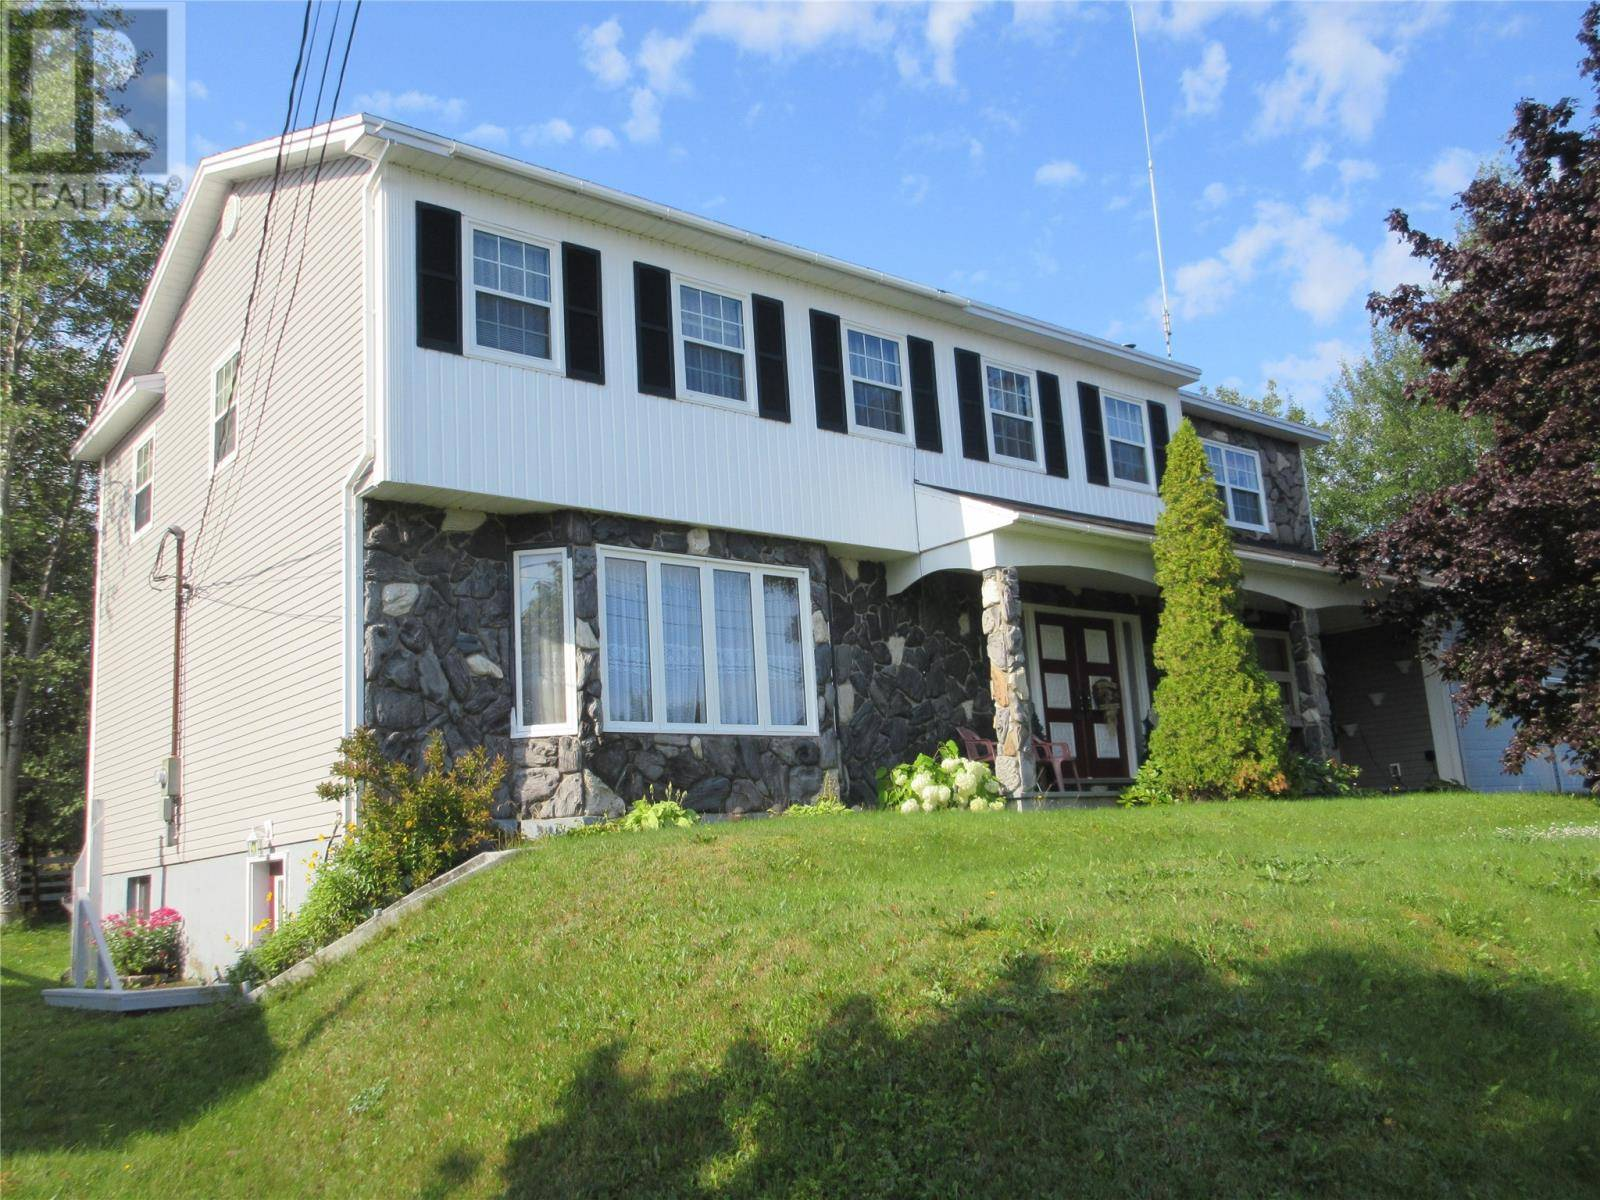 House for sale at 13 Harbourview Rd Botwood Newfoundland - MLS: 1210160